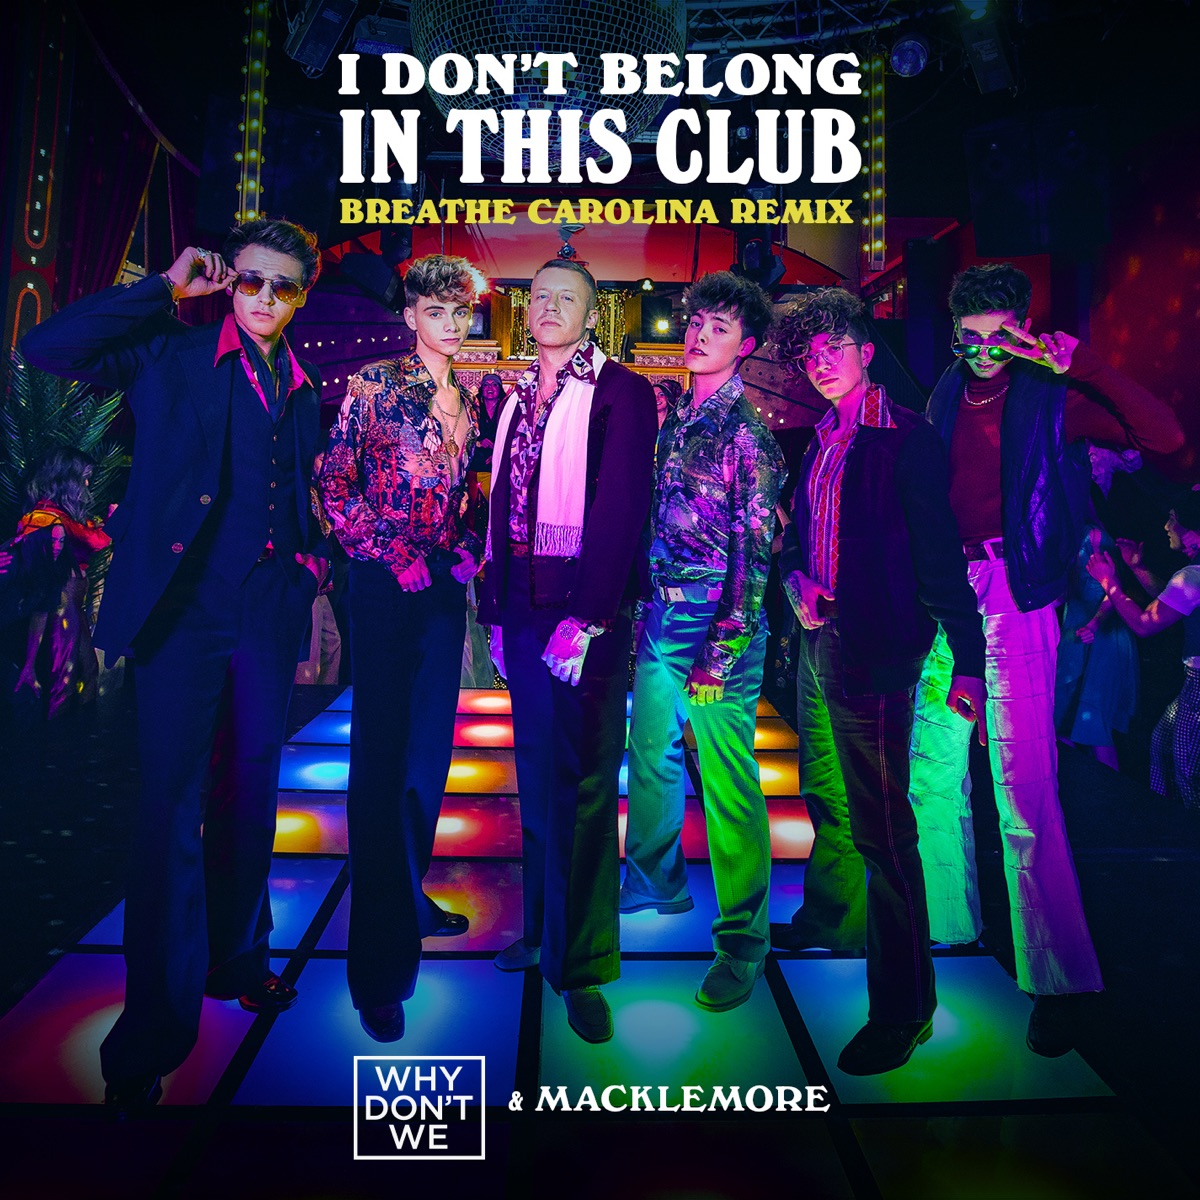 I Dont Belong in This Club Breathe Carolina Remix - Single Why Dont We  Macklemore CD cover